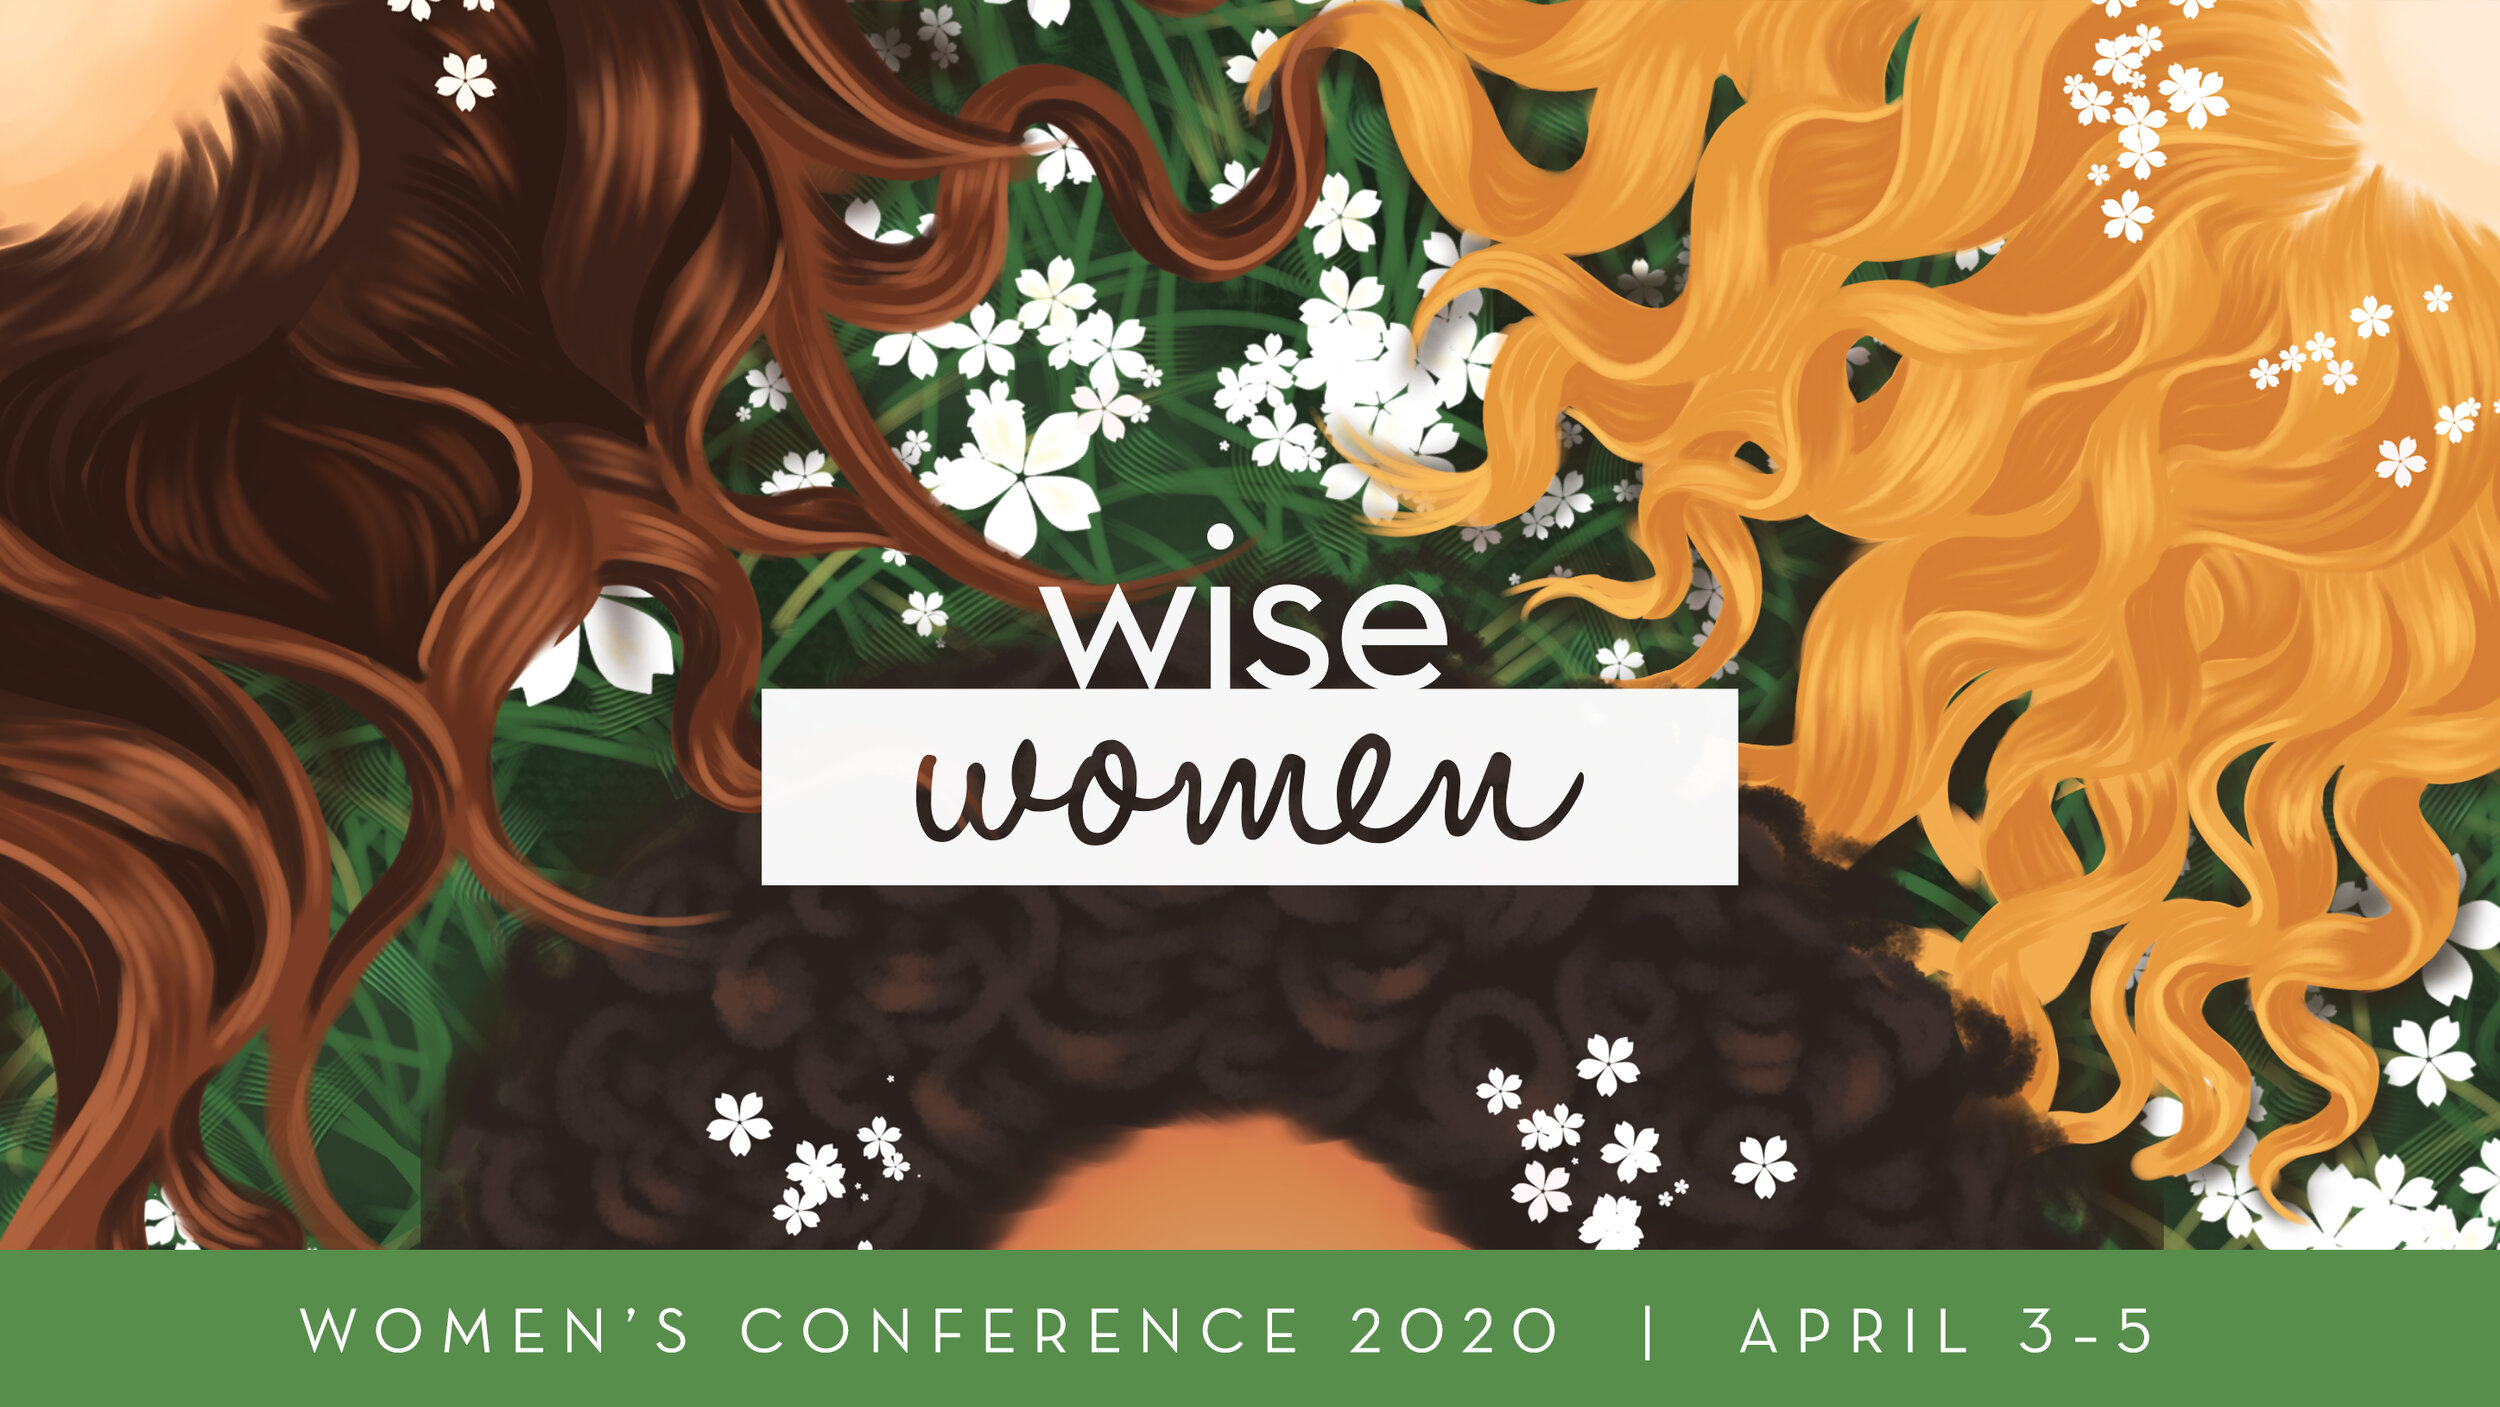 Women's Conference 2020 Graphic.jpg